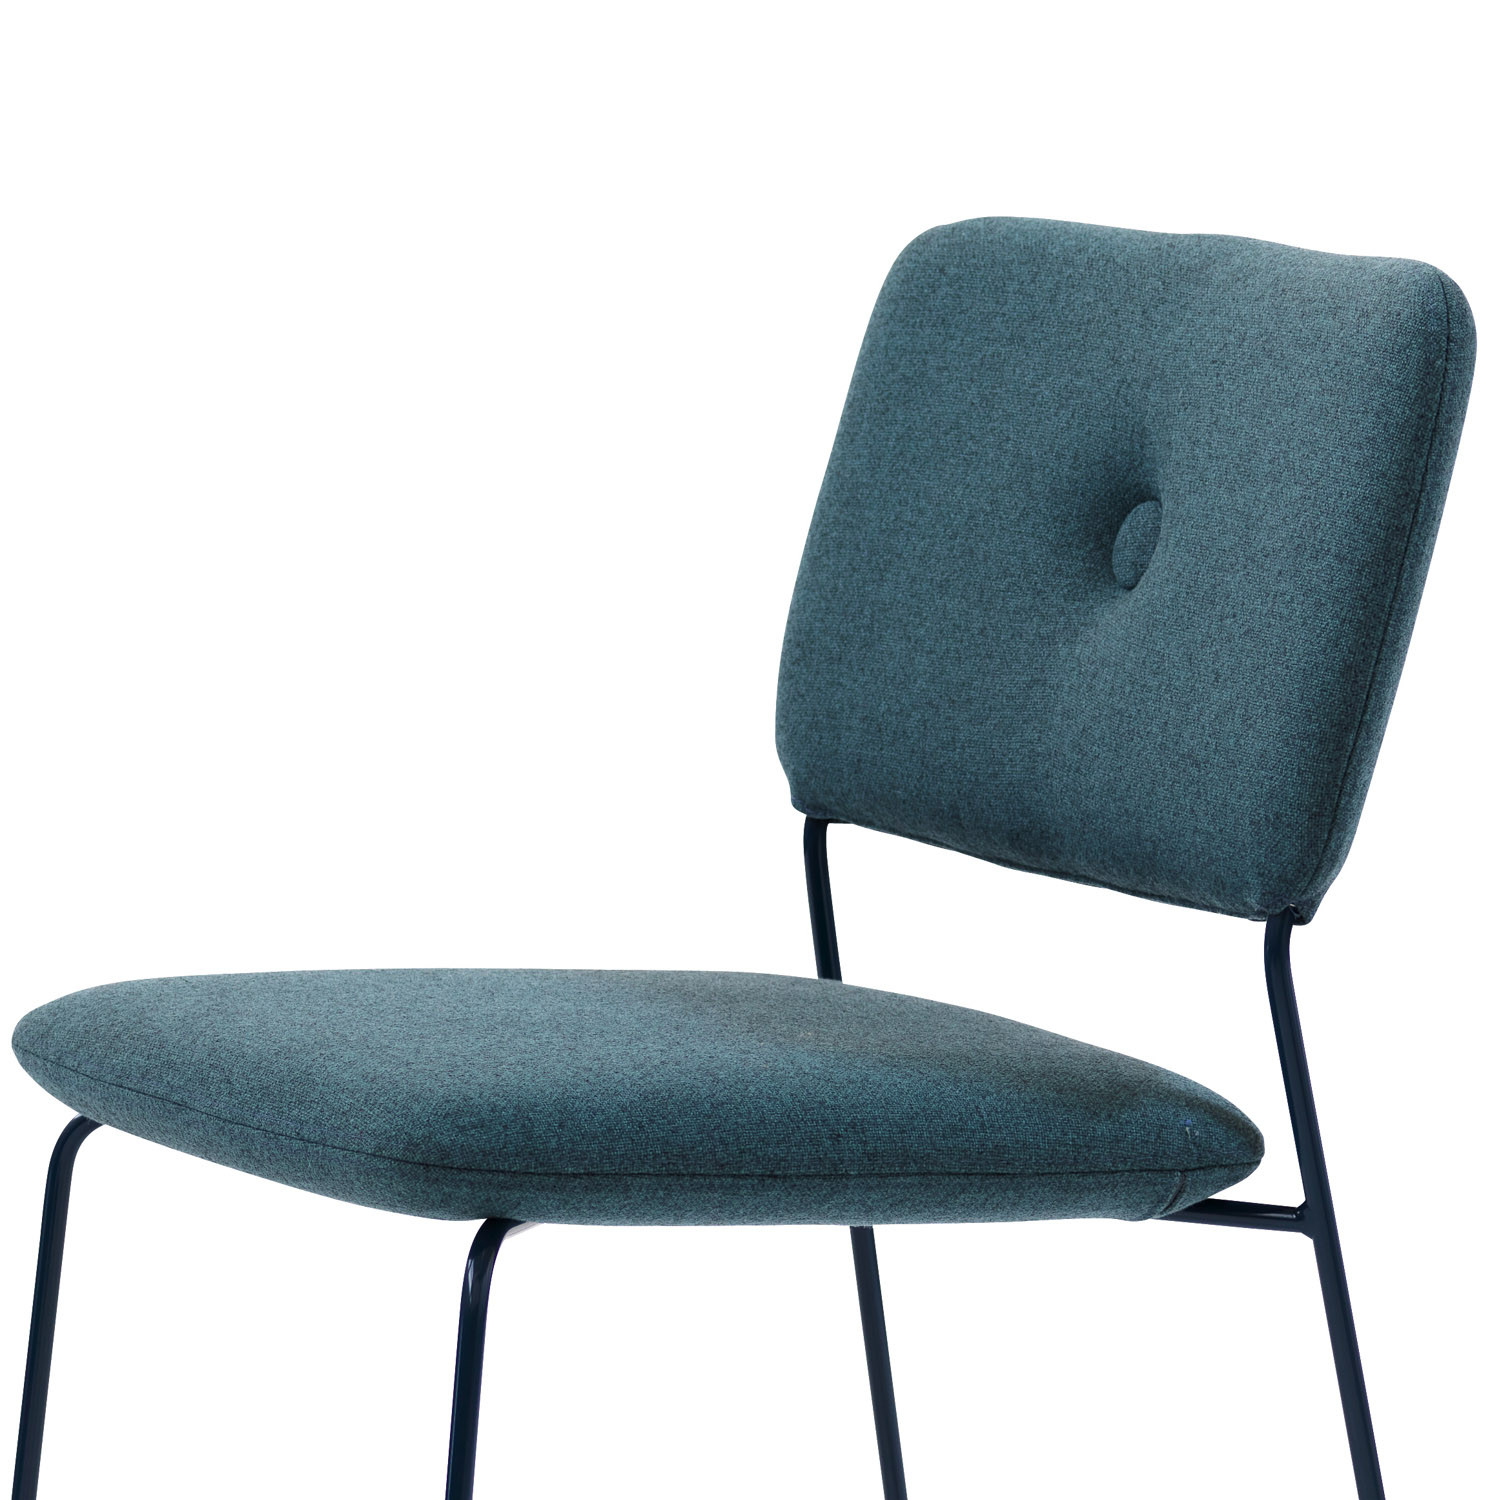 Dundra Conference Chairs S70 by Bla Station